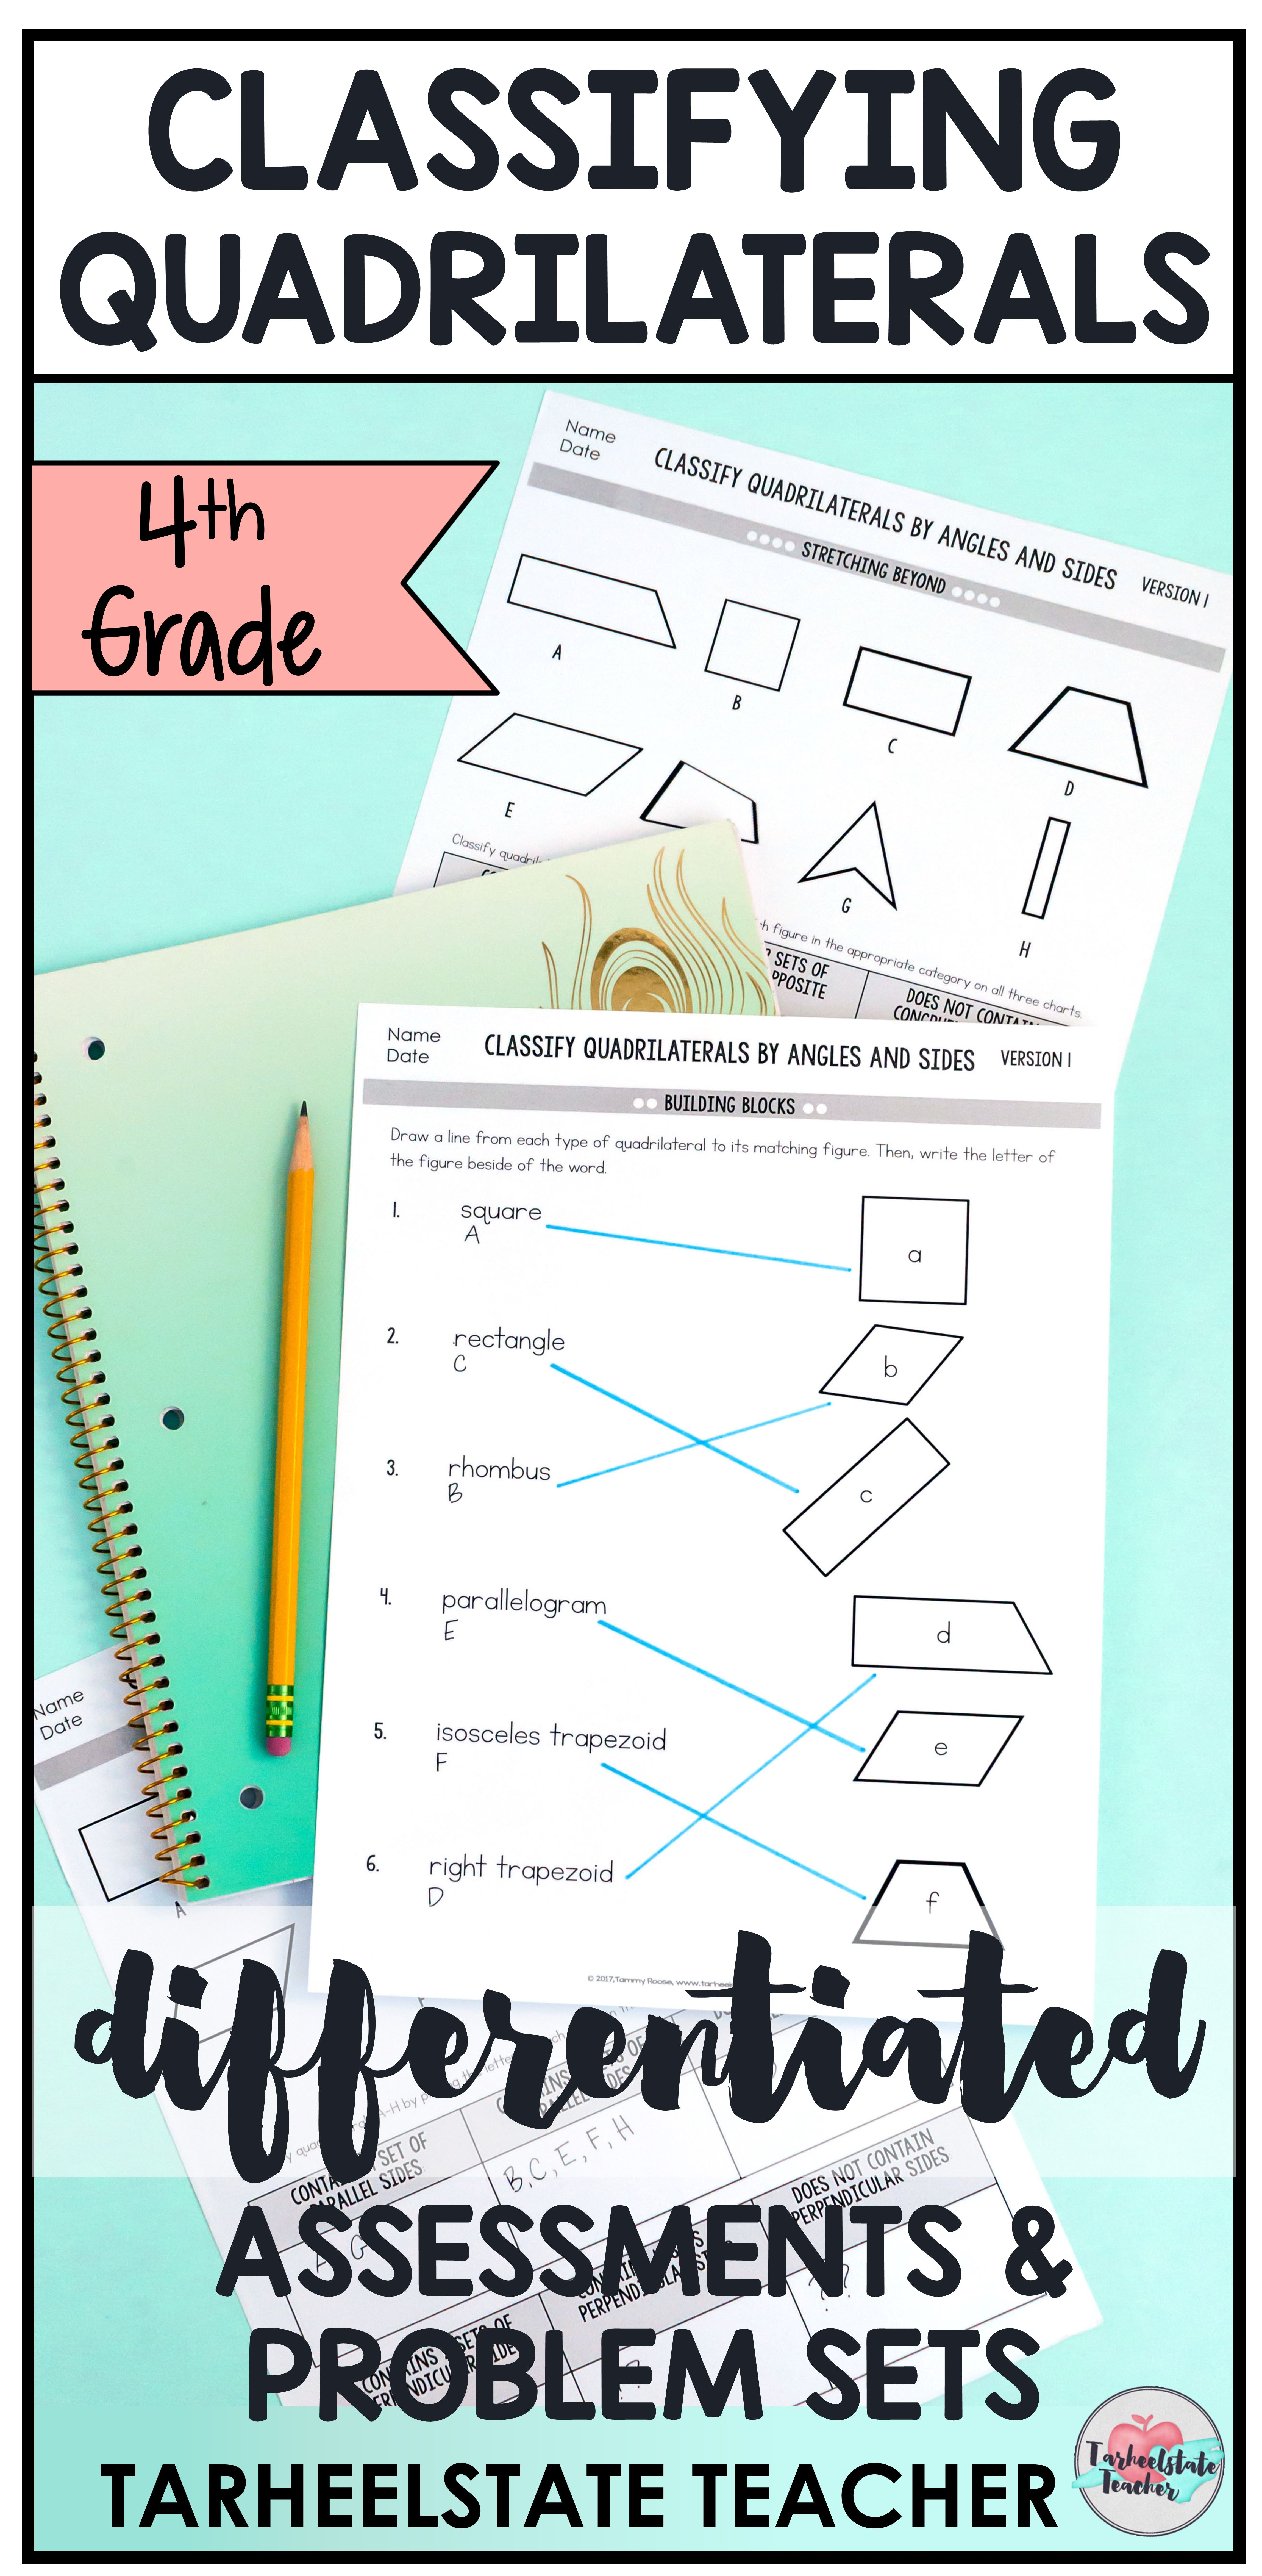 small resolution of 4th Grade Geometry   Classifying Quadrilaterals Differentiated Worksheets    4th Grade Quadri…   Quadrilaterals